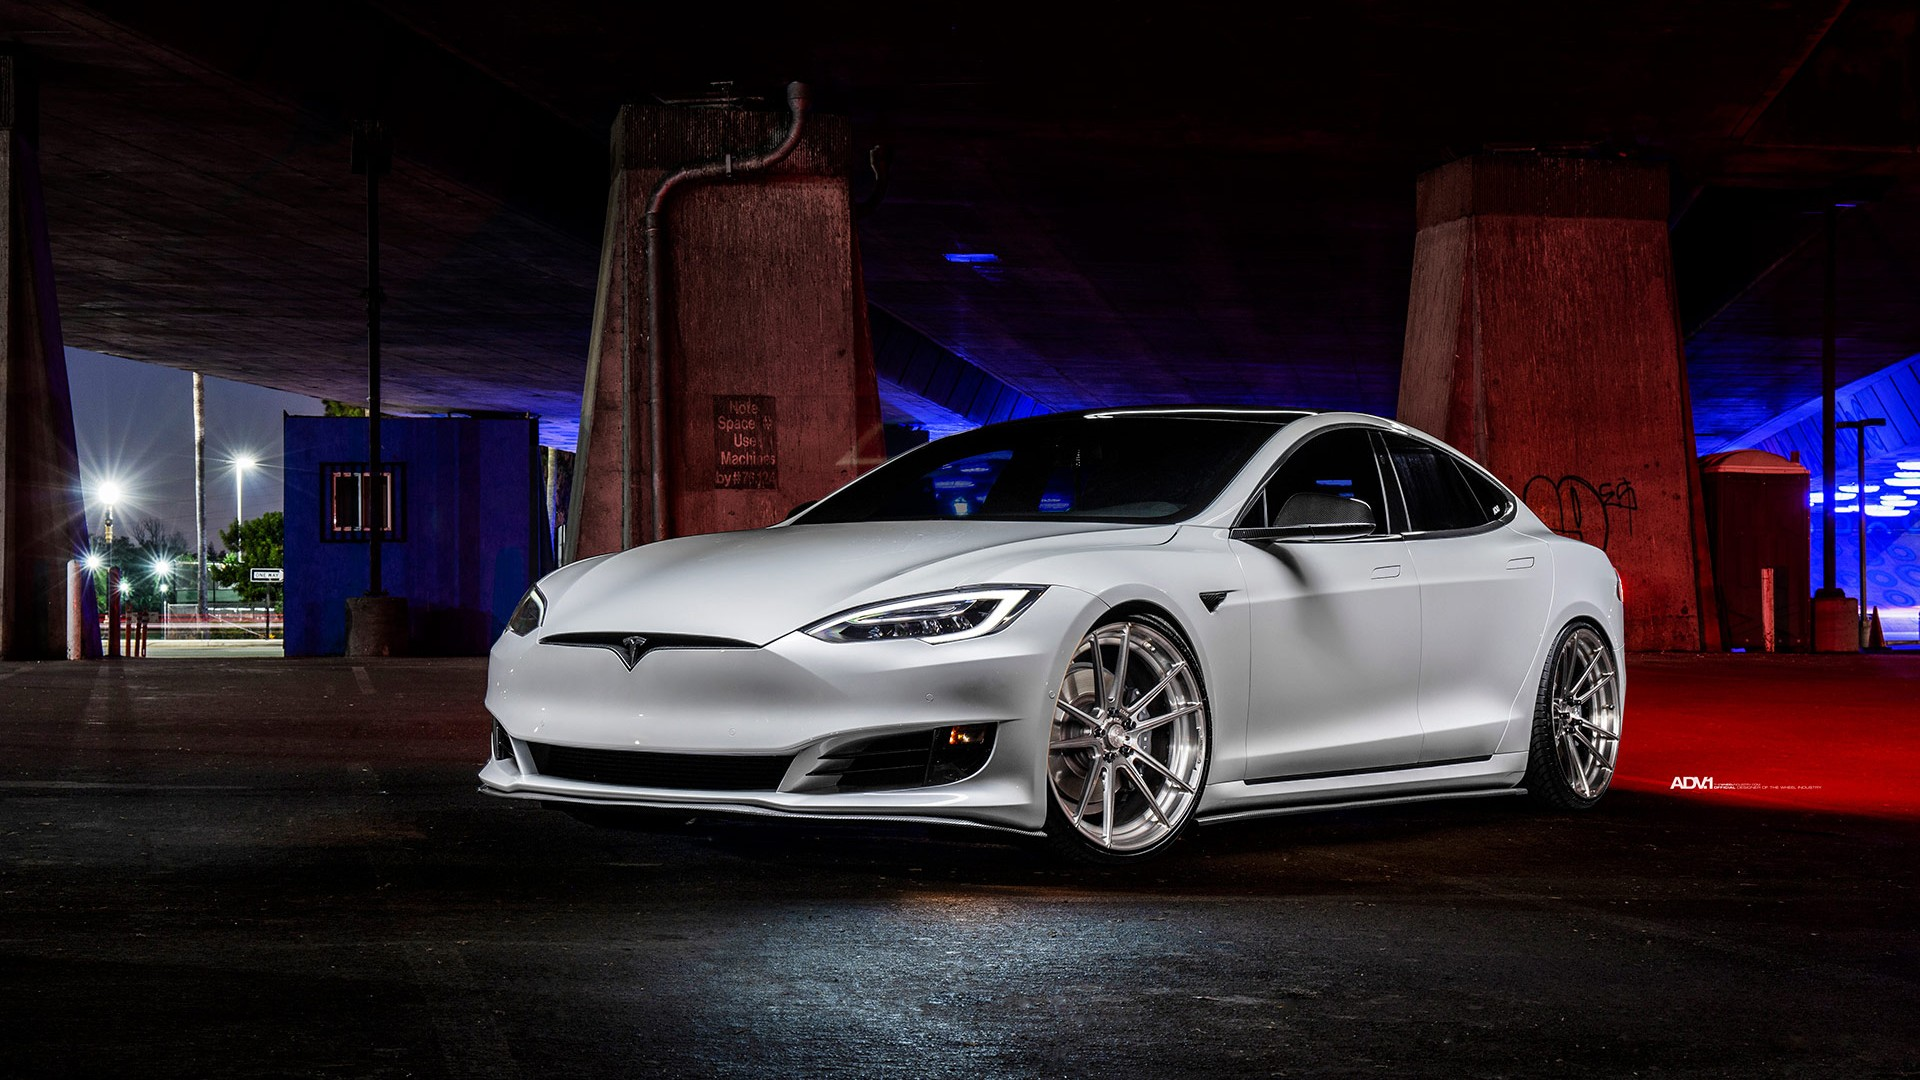 White Tesla Model S Wallpaper Hd Car Wallpapers Id 10967